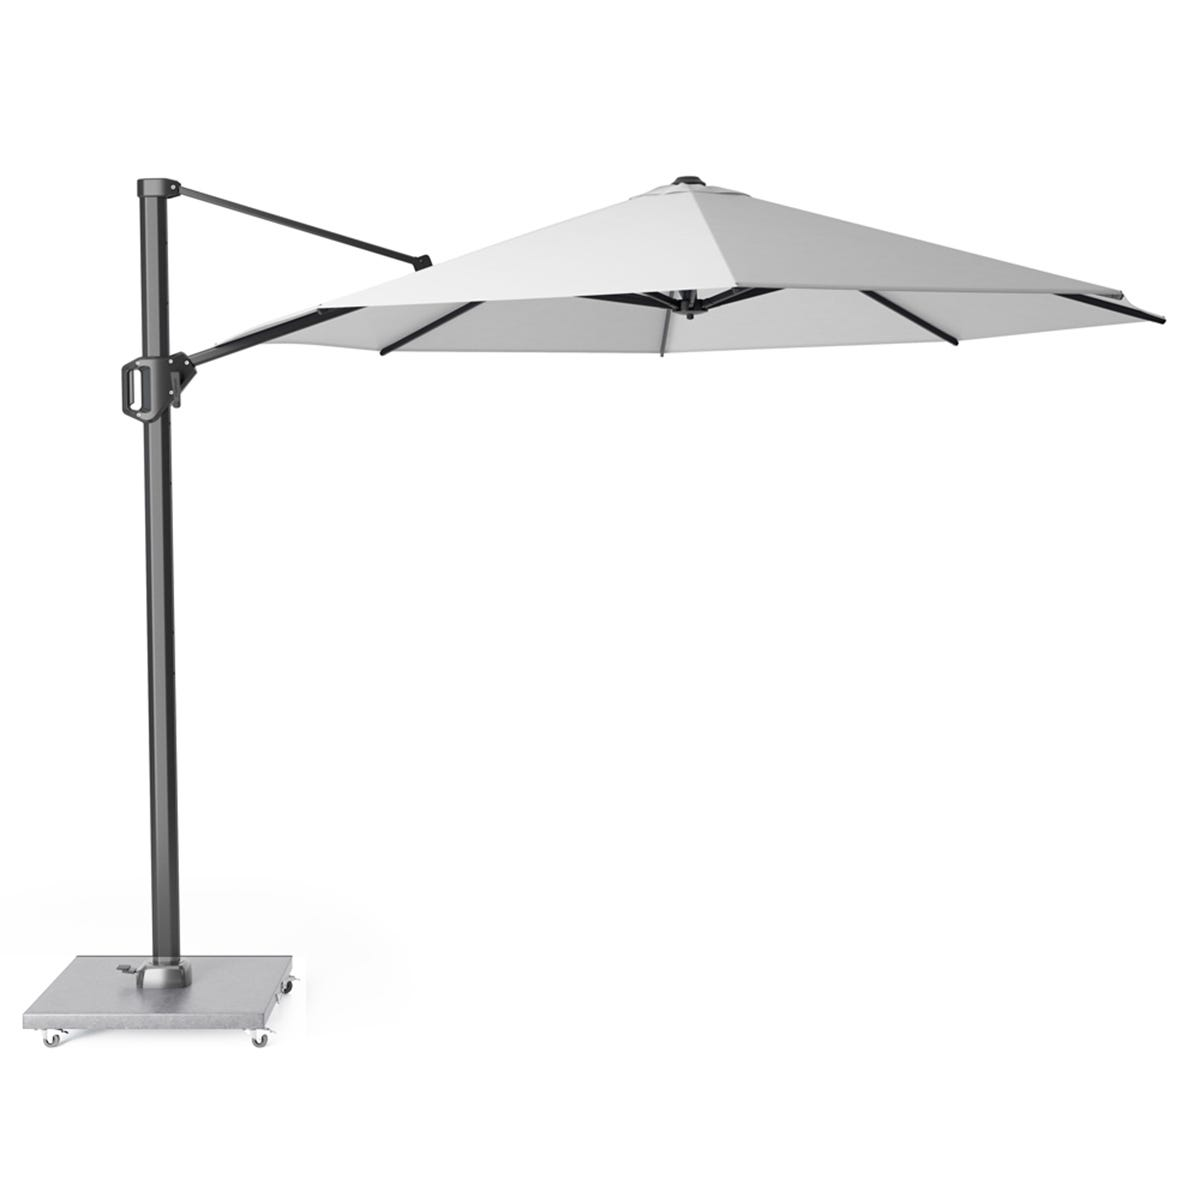 Pacific Lifestyle Challenger T1 3.5m Round Ivory Parasol with Hammered Grey Granite 90kg Wheeled Base